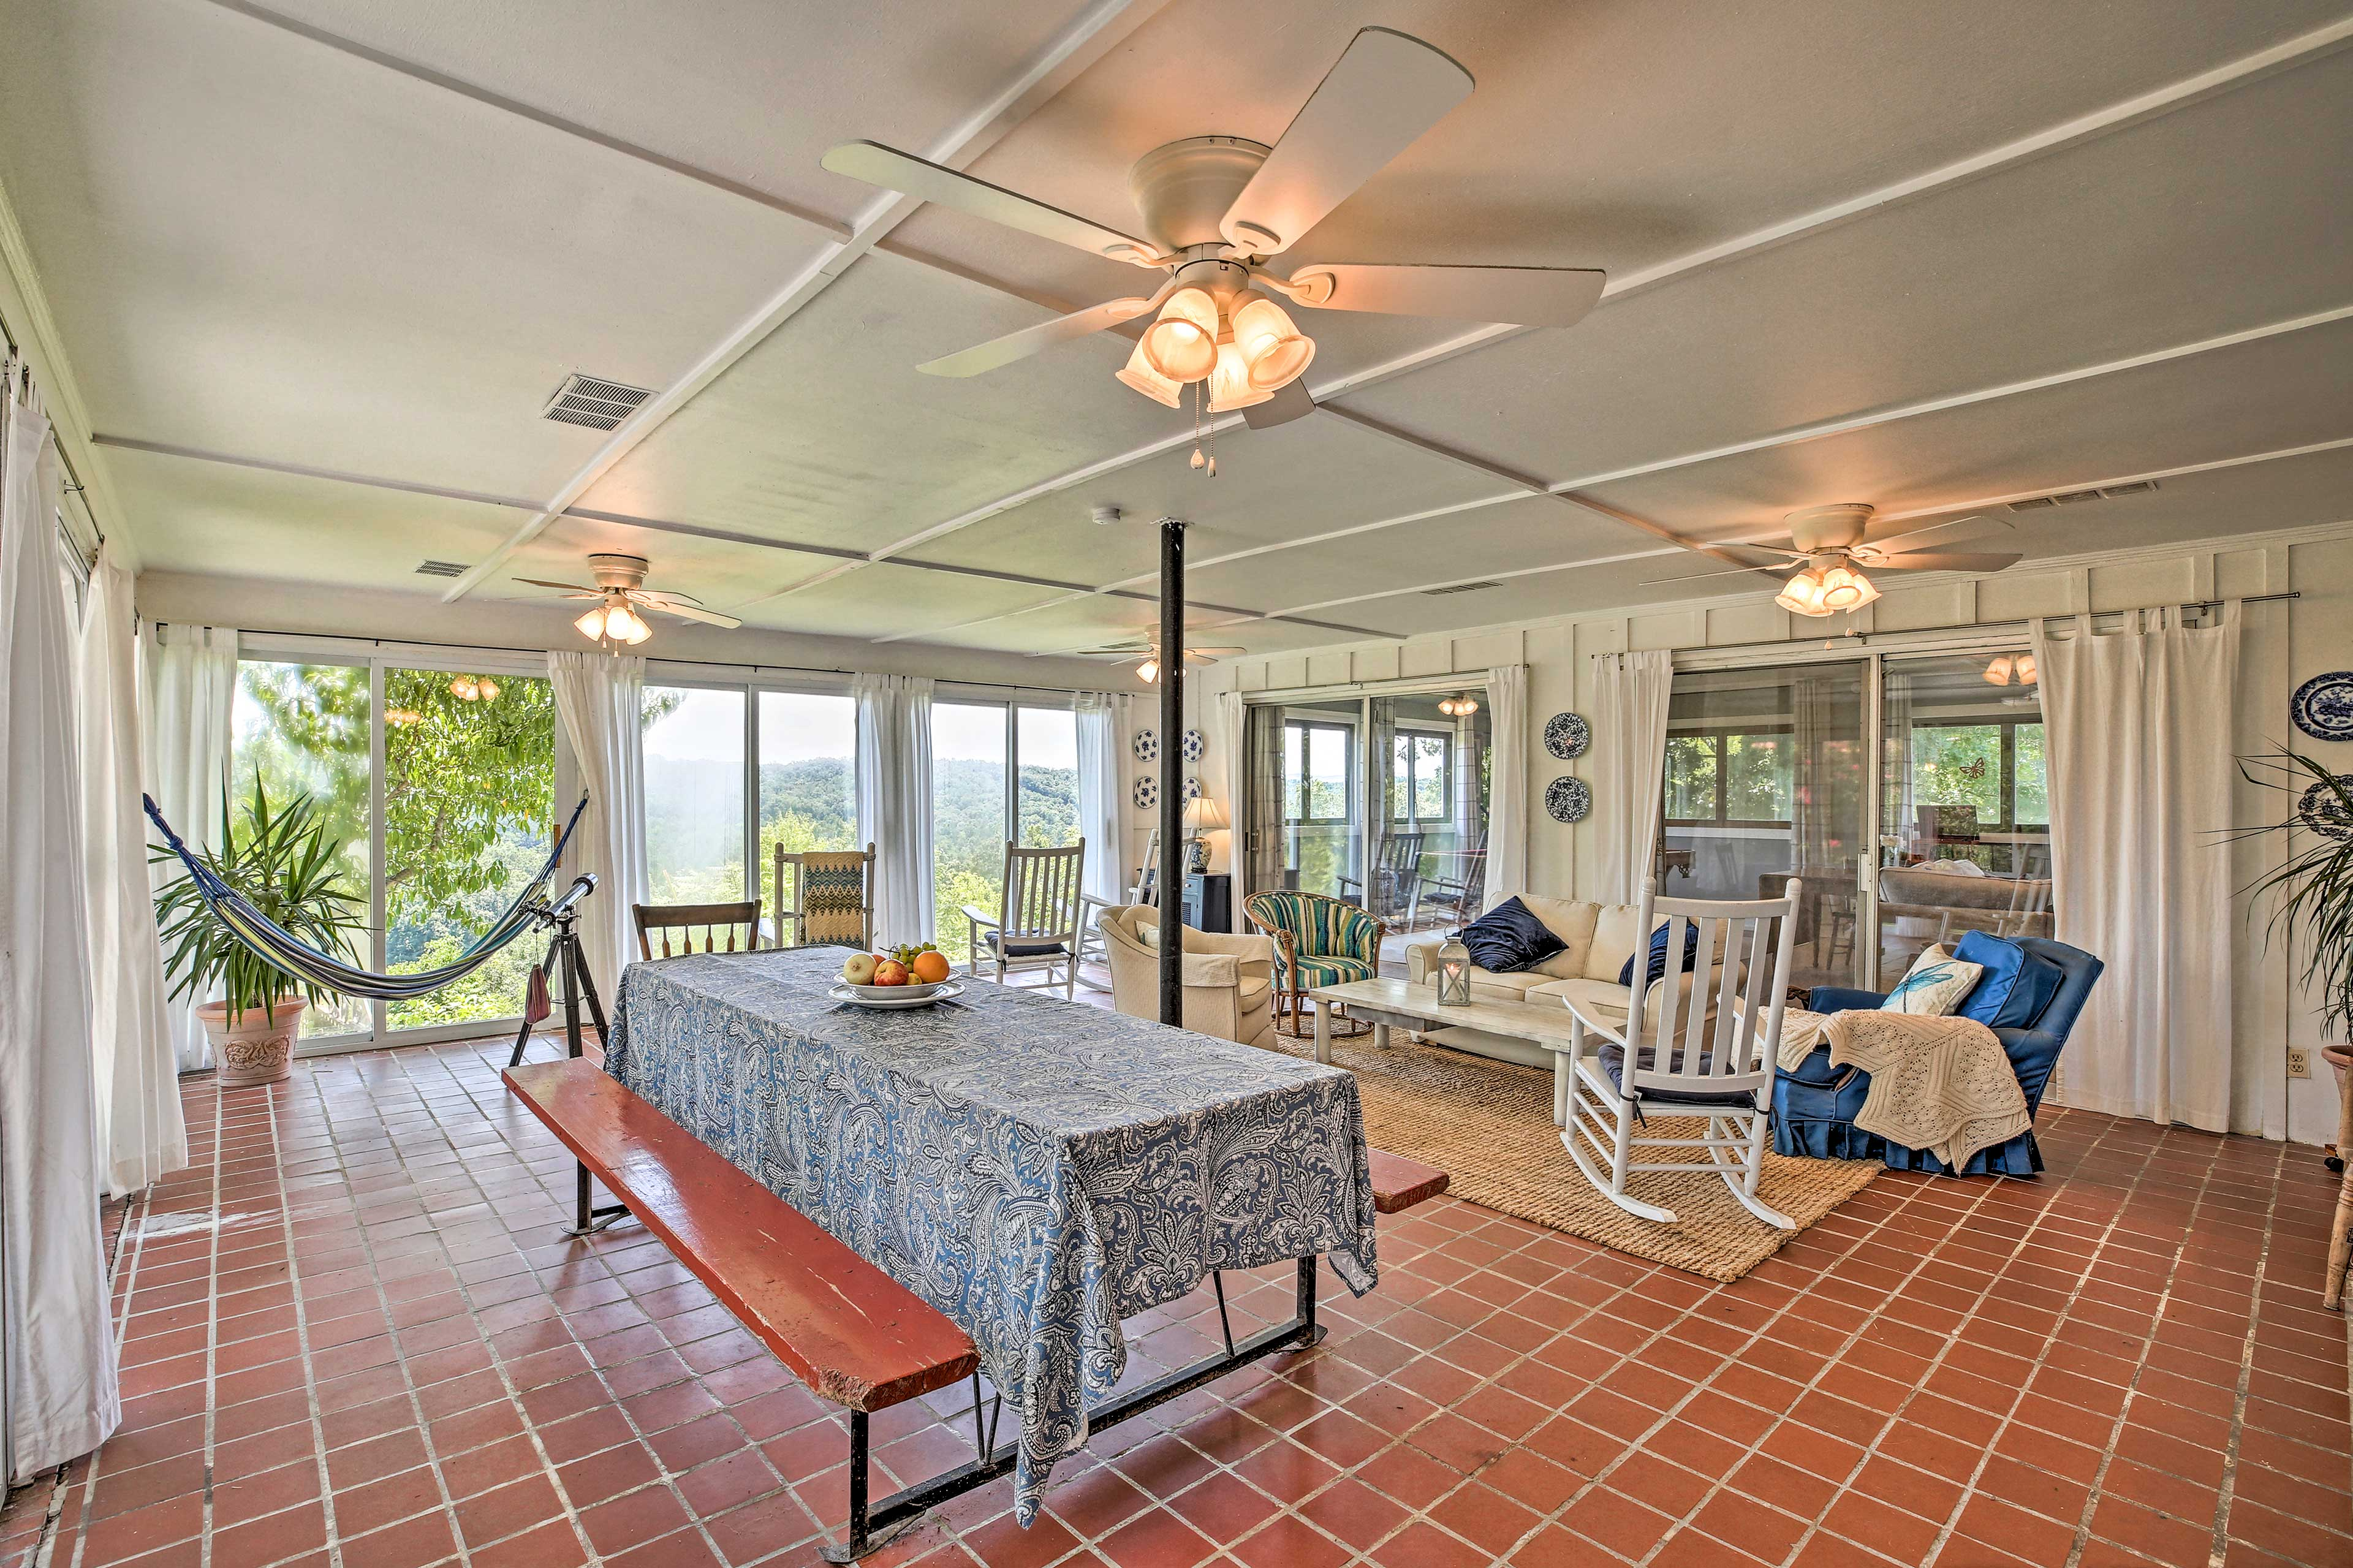 The sunroom is the perfect place to hang out!